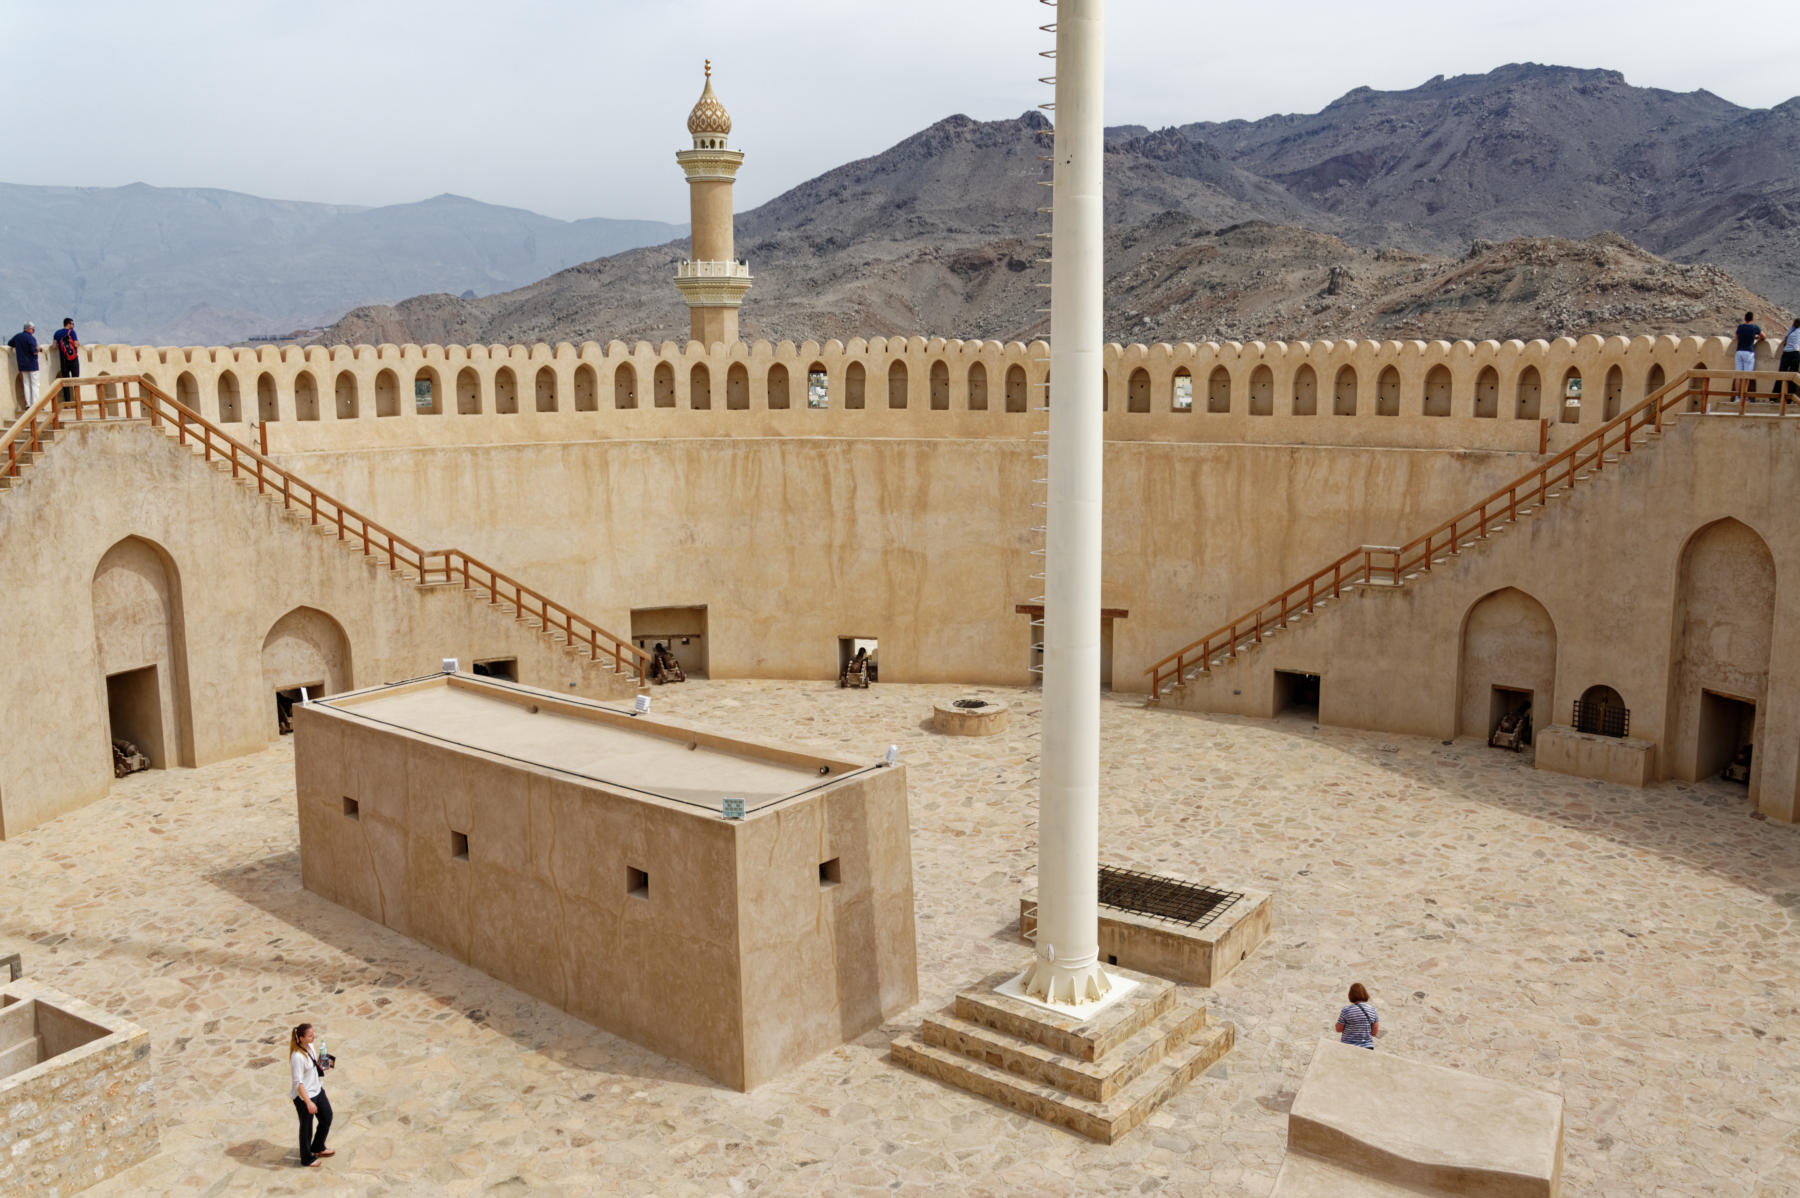 The roof of Nizwa Fort